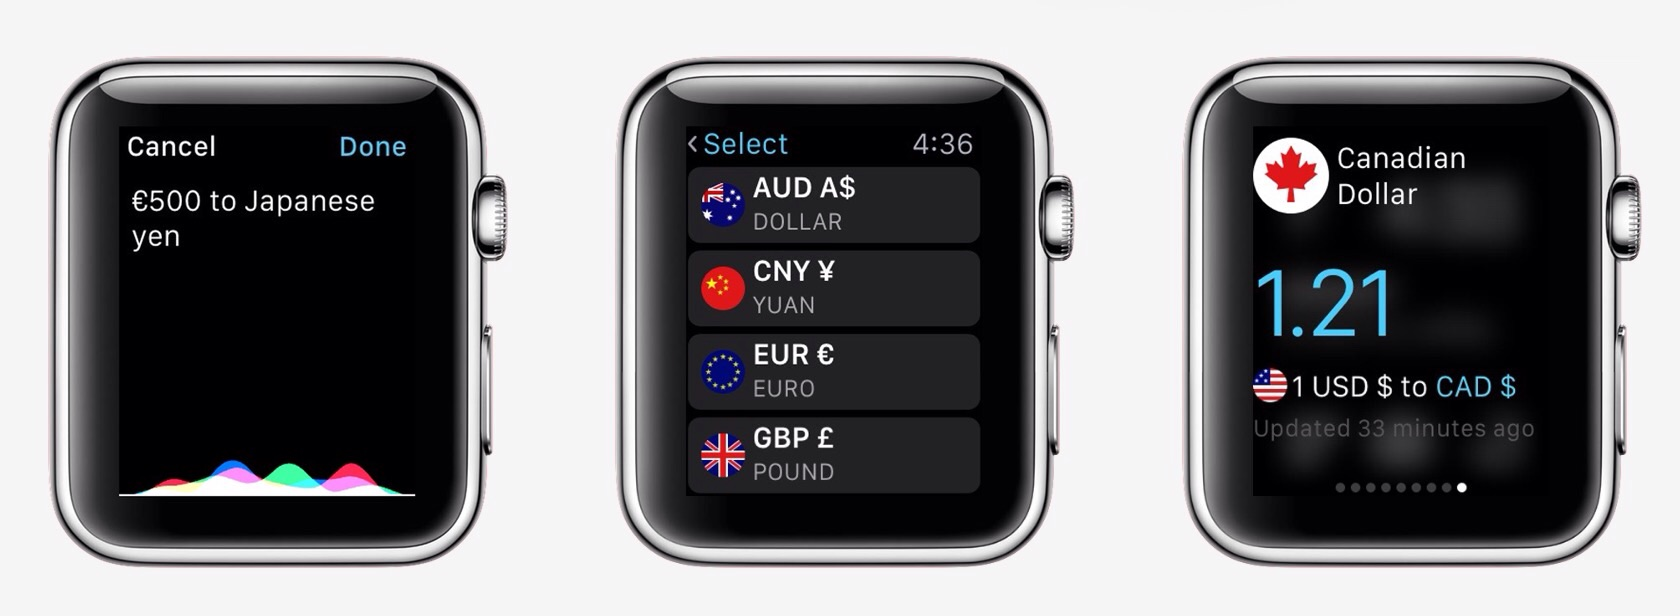 currencies-2-0-currency-converter-for-iphone-and-apple-watch-3